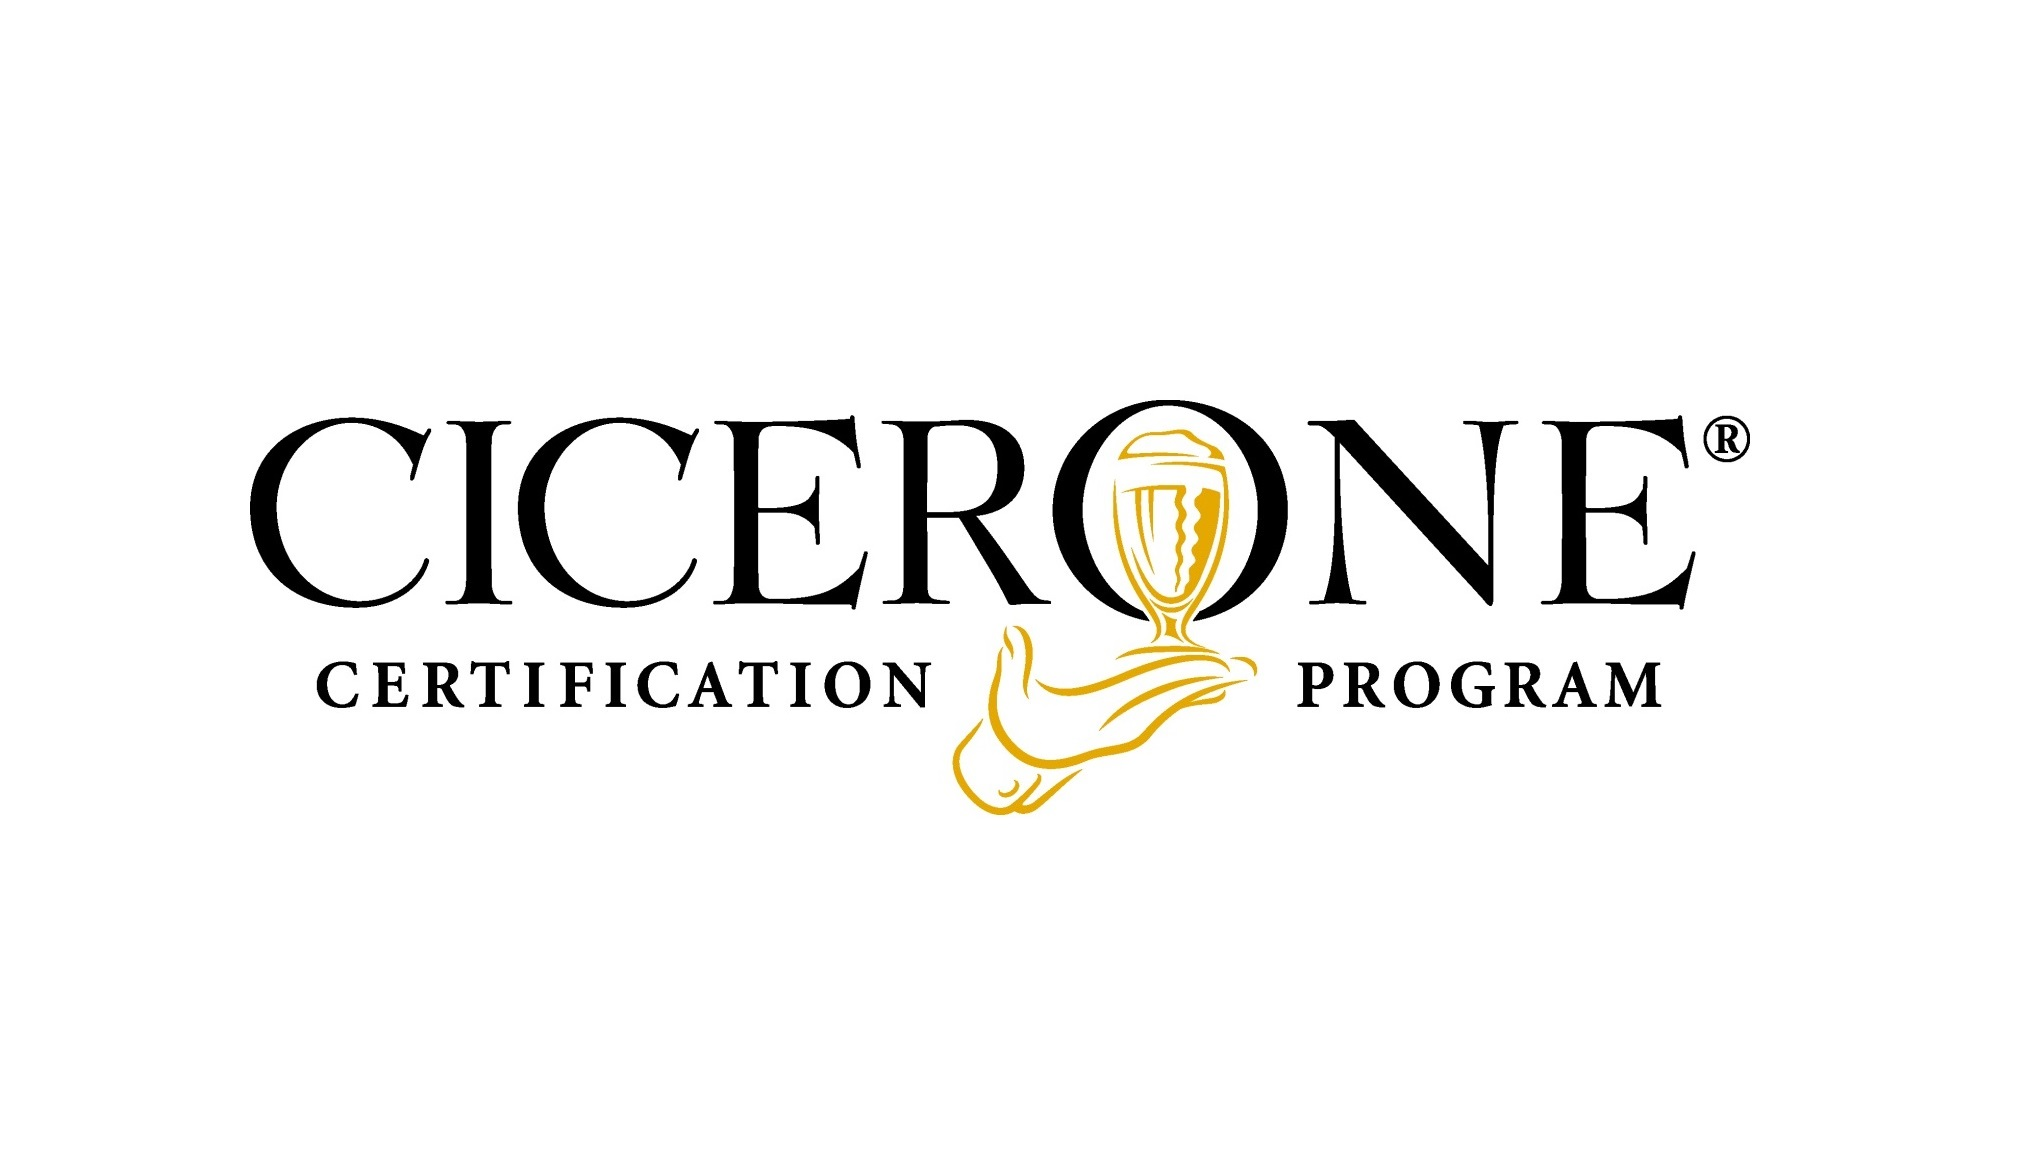 cicerone certification program beer course adds server celebrated 10th recently anniversary